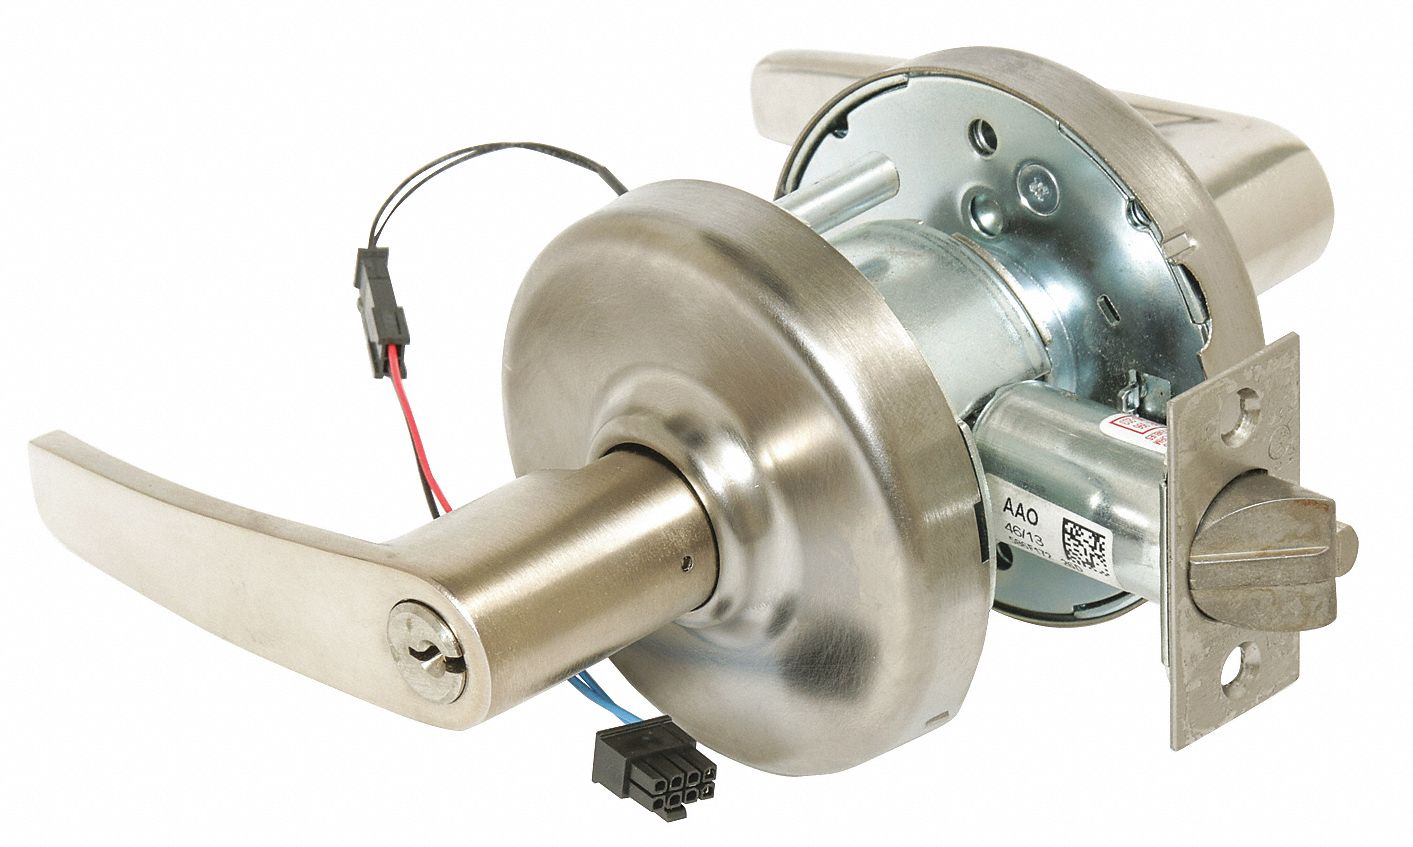 CORBIN CL33903 AZD 626 24AD Lever Lockset,  Electrical,  Extra Heavy Duty,  Keyed Different,  Satin Chrome,  2 3/4 in Backset